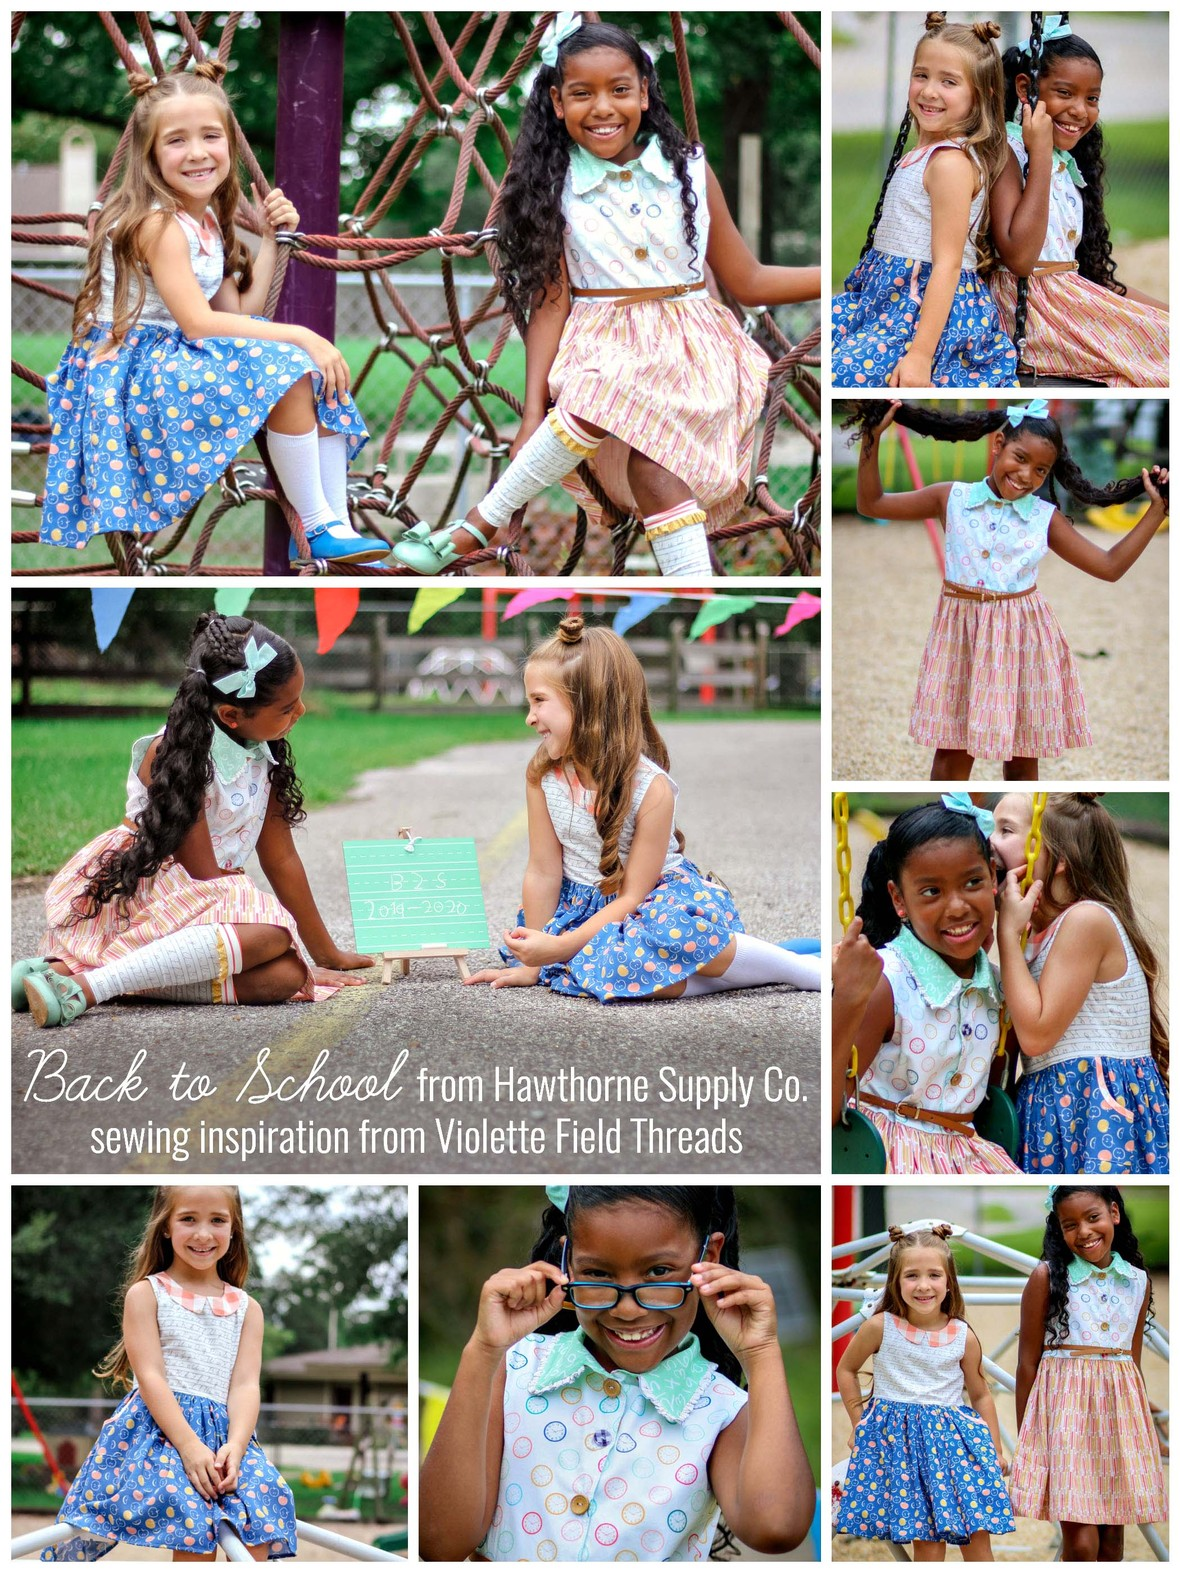 Meka Lew and Amber Guillot  Violette Field Threads Back to School Hawthorne Supply Co